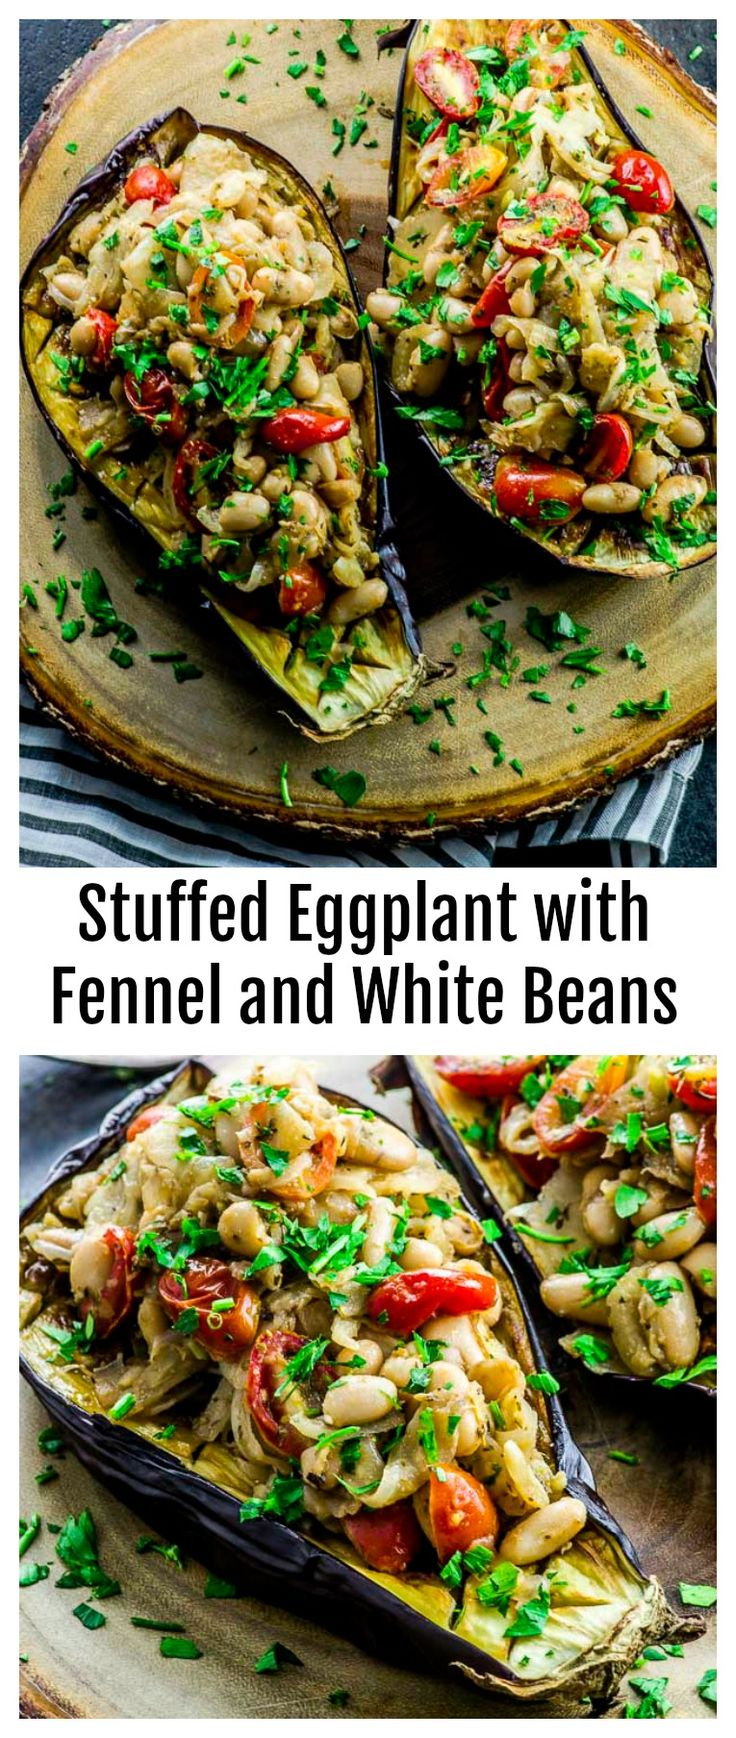 Stuffed Eggplant with Fennel and White Beans via @…Edit description